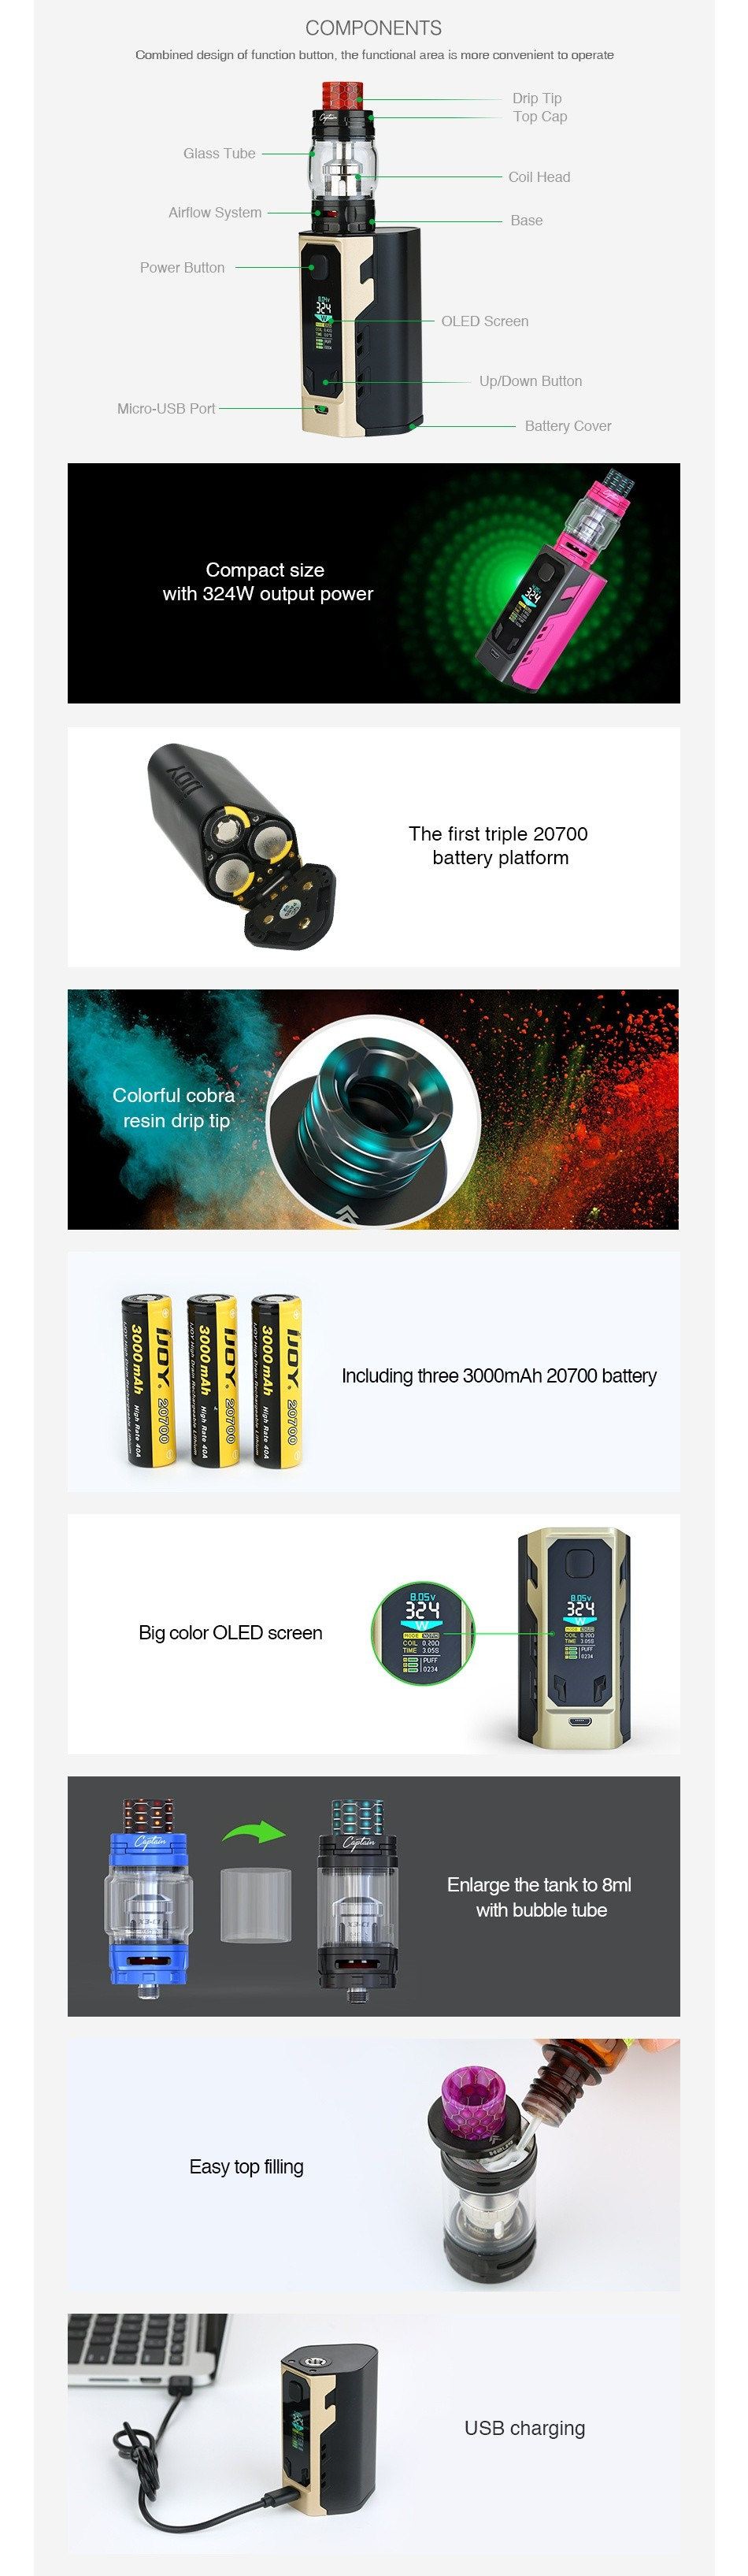 IJOY Captain X3 324W 20700 TC Kit 9000mAh COMPONENTS miner reson m niton the functional area is more convenient to nnpratP Coil He Airflow Systcm Power Button    Down Button Compact size ith 324W output power The first triple 20700 Colorful cobra resin drip Including three 3000mAh 20700 battery g color OLED screen Enlarge the tank with bubble tube USB charging